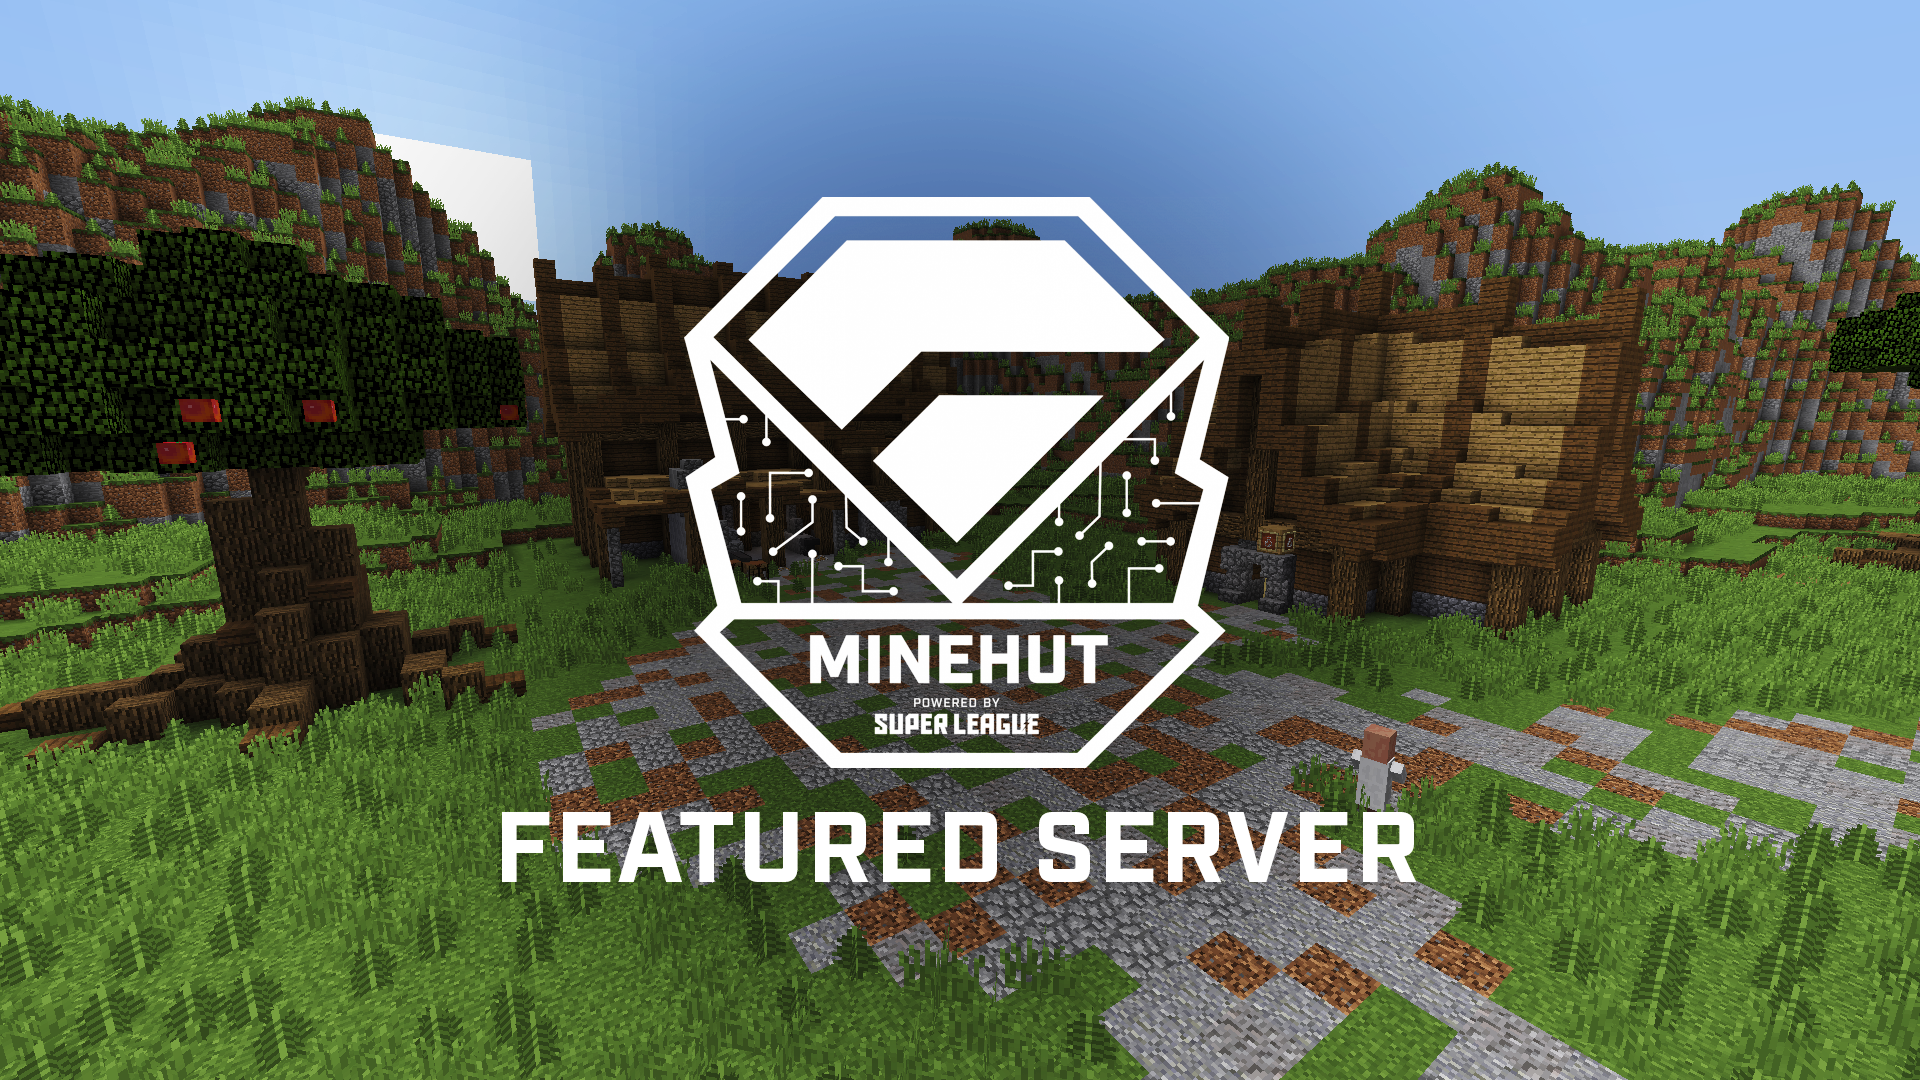 Minehut Featured Server: DarkSpire - Super League Gaming